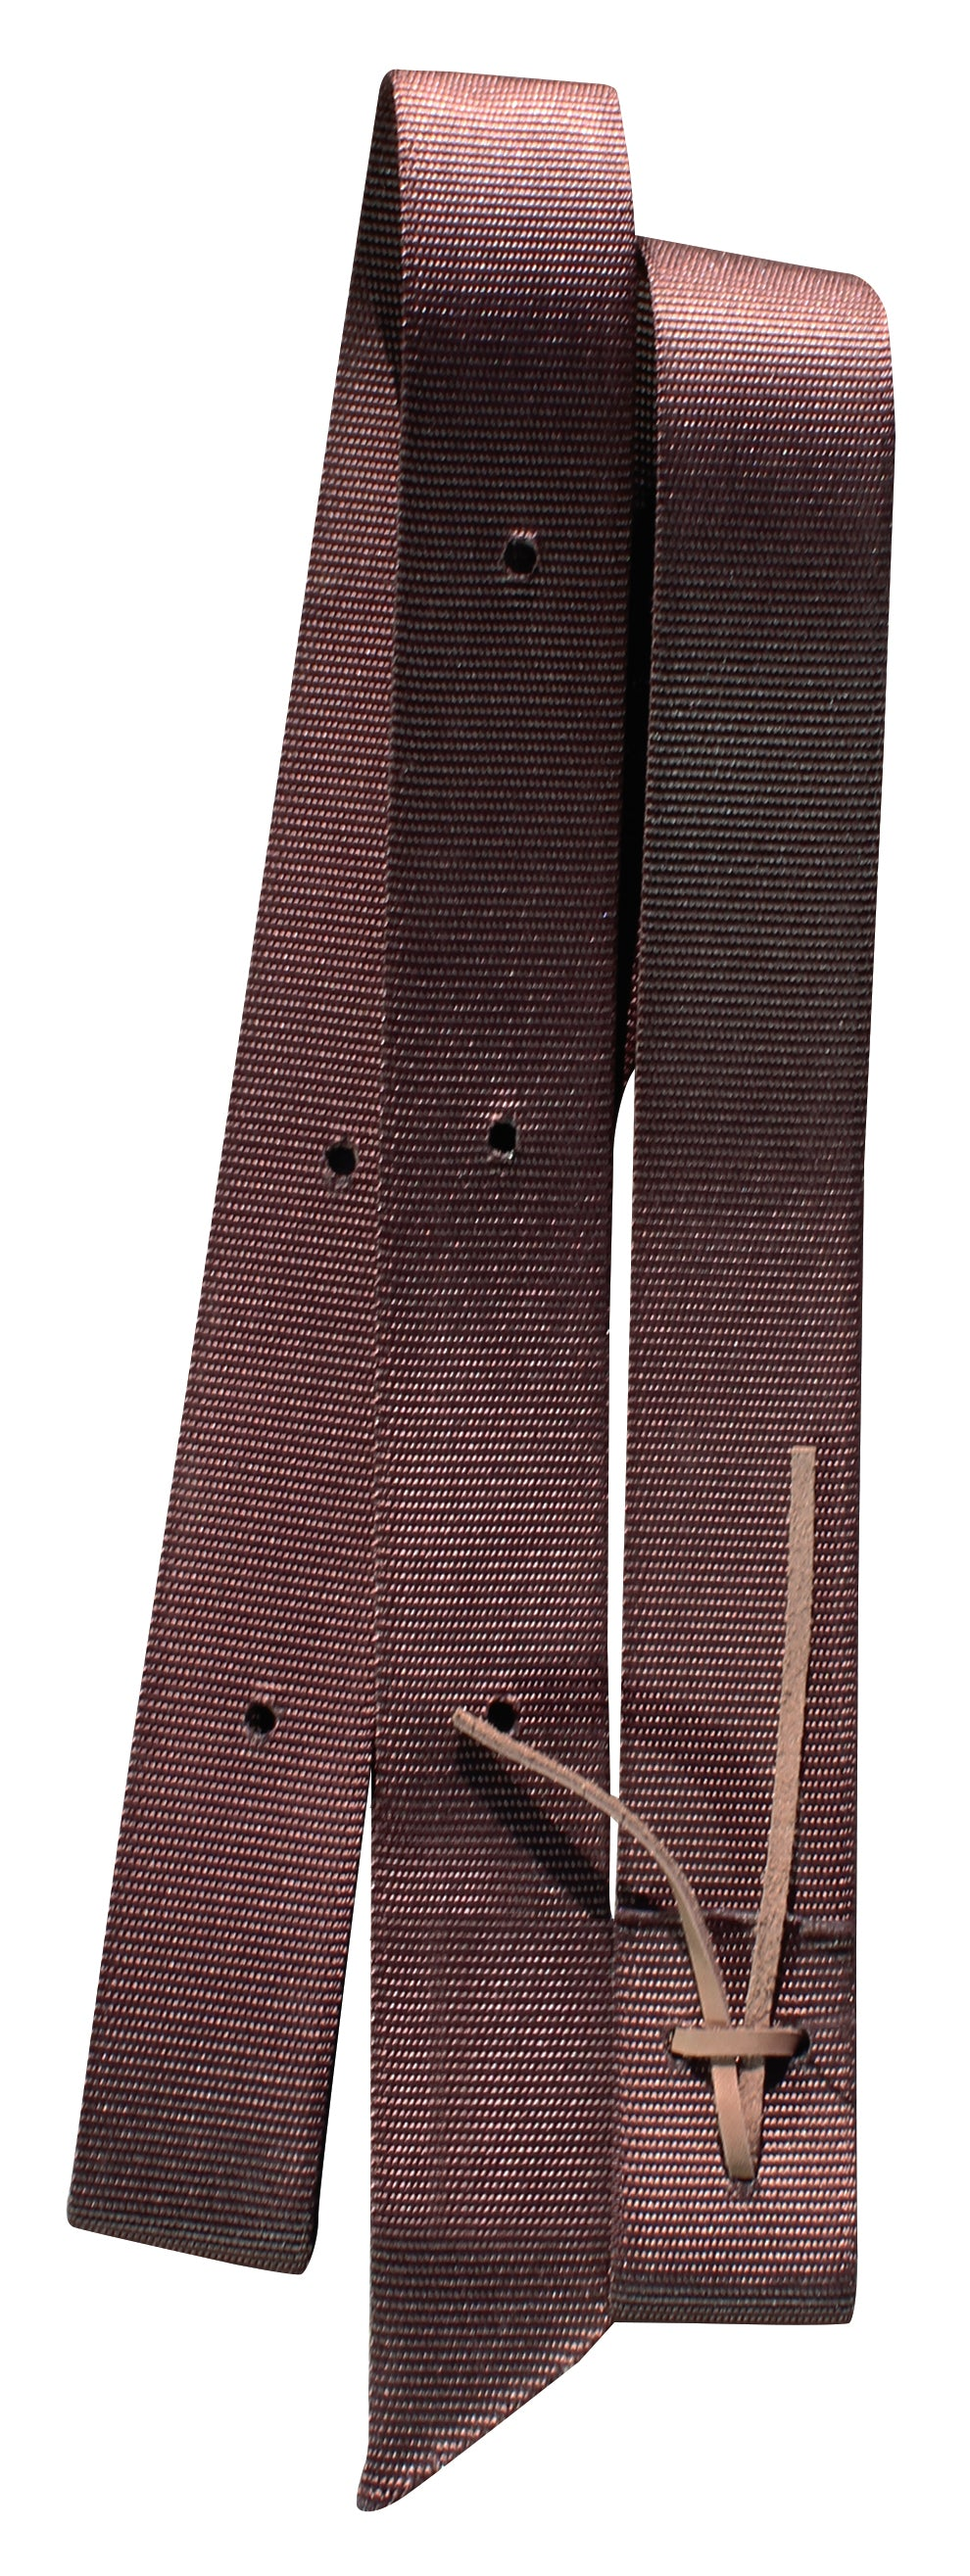 Professional's Choice Nylon Latigo Strap